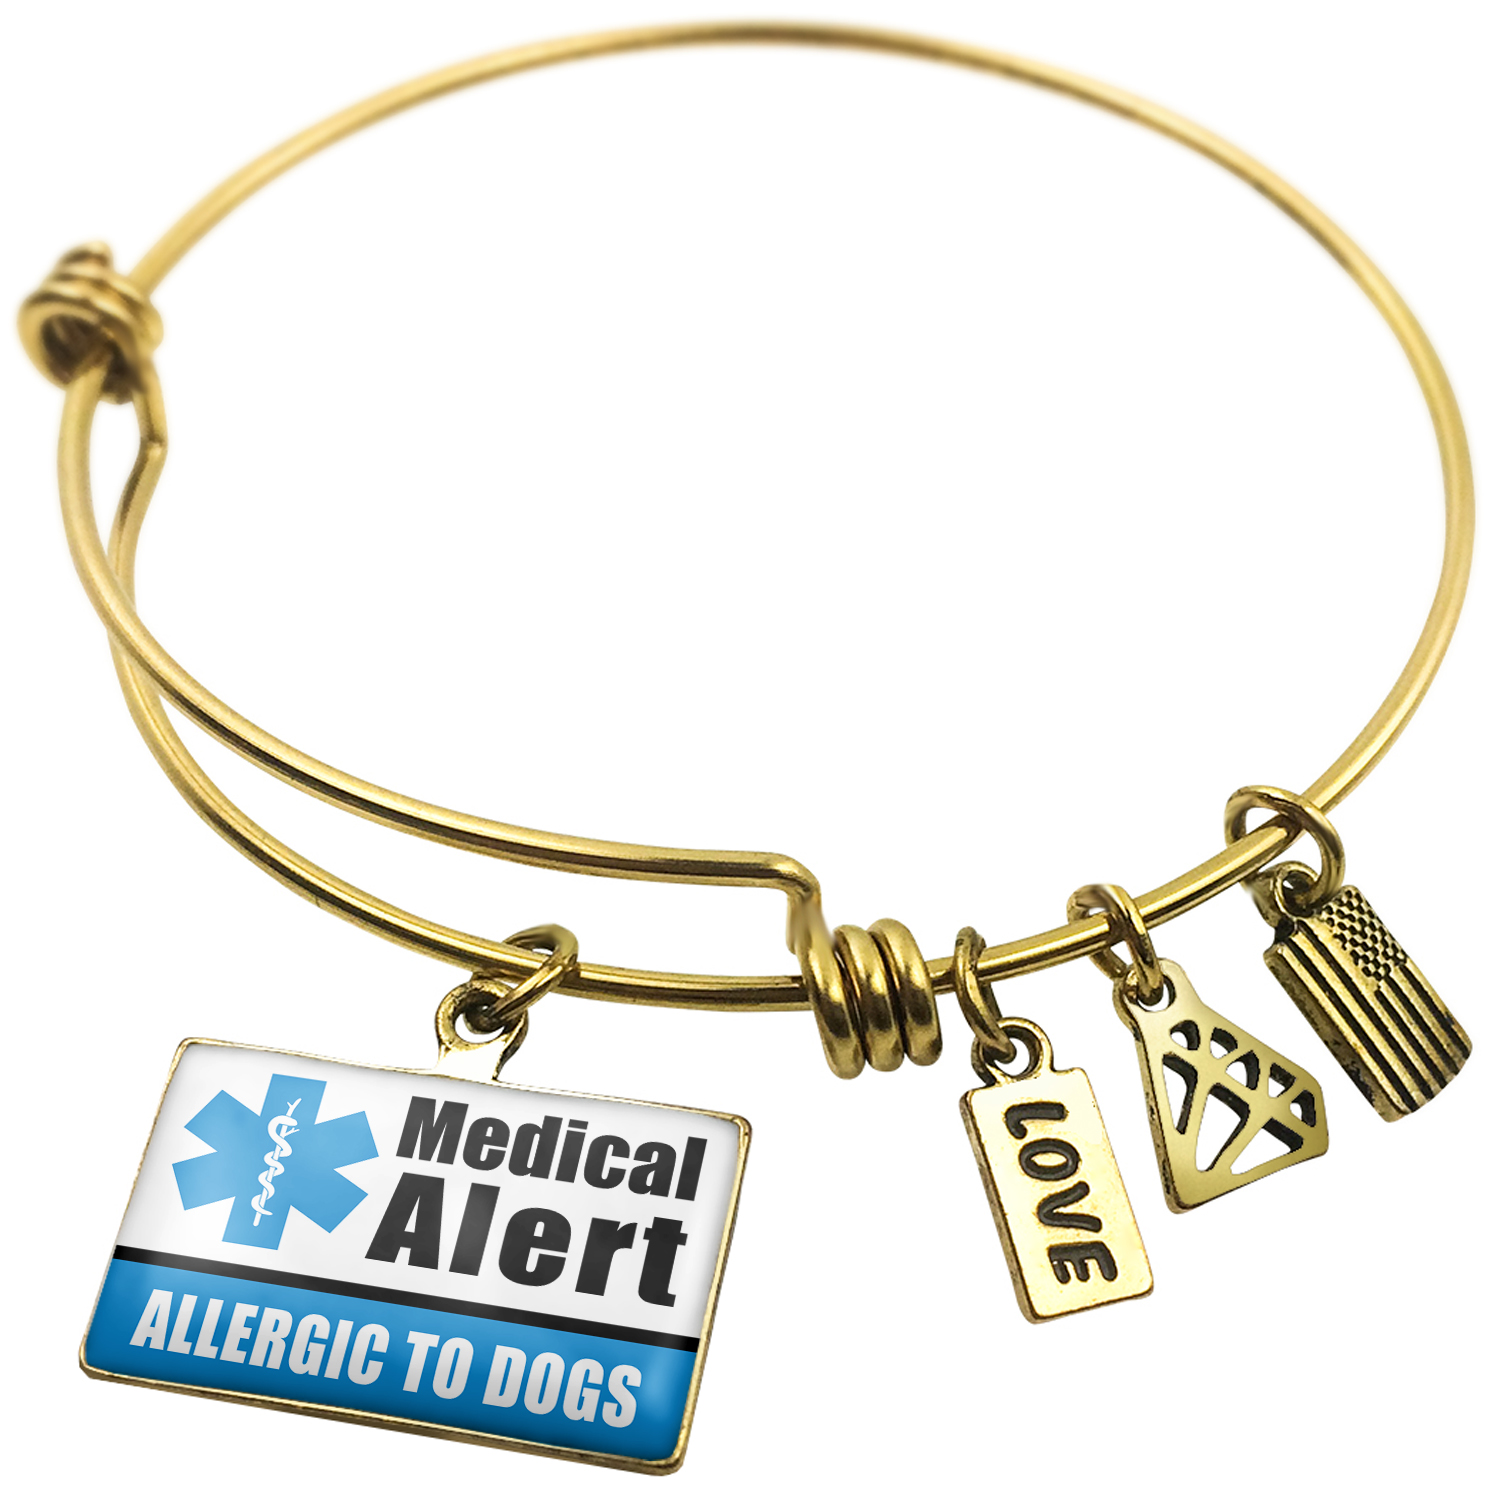 Expandable Wire Bangle Bracelet Medical Alert Blue Allergic to Dogs - NEONBLOND